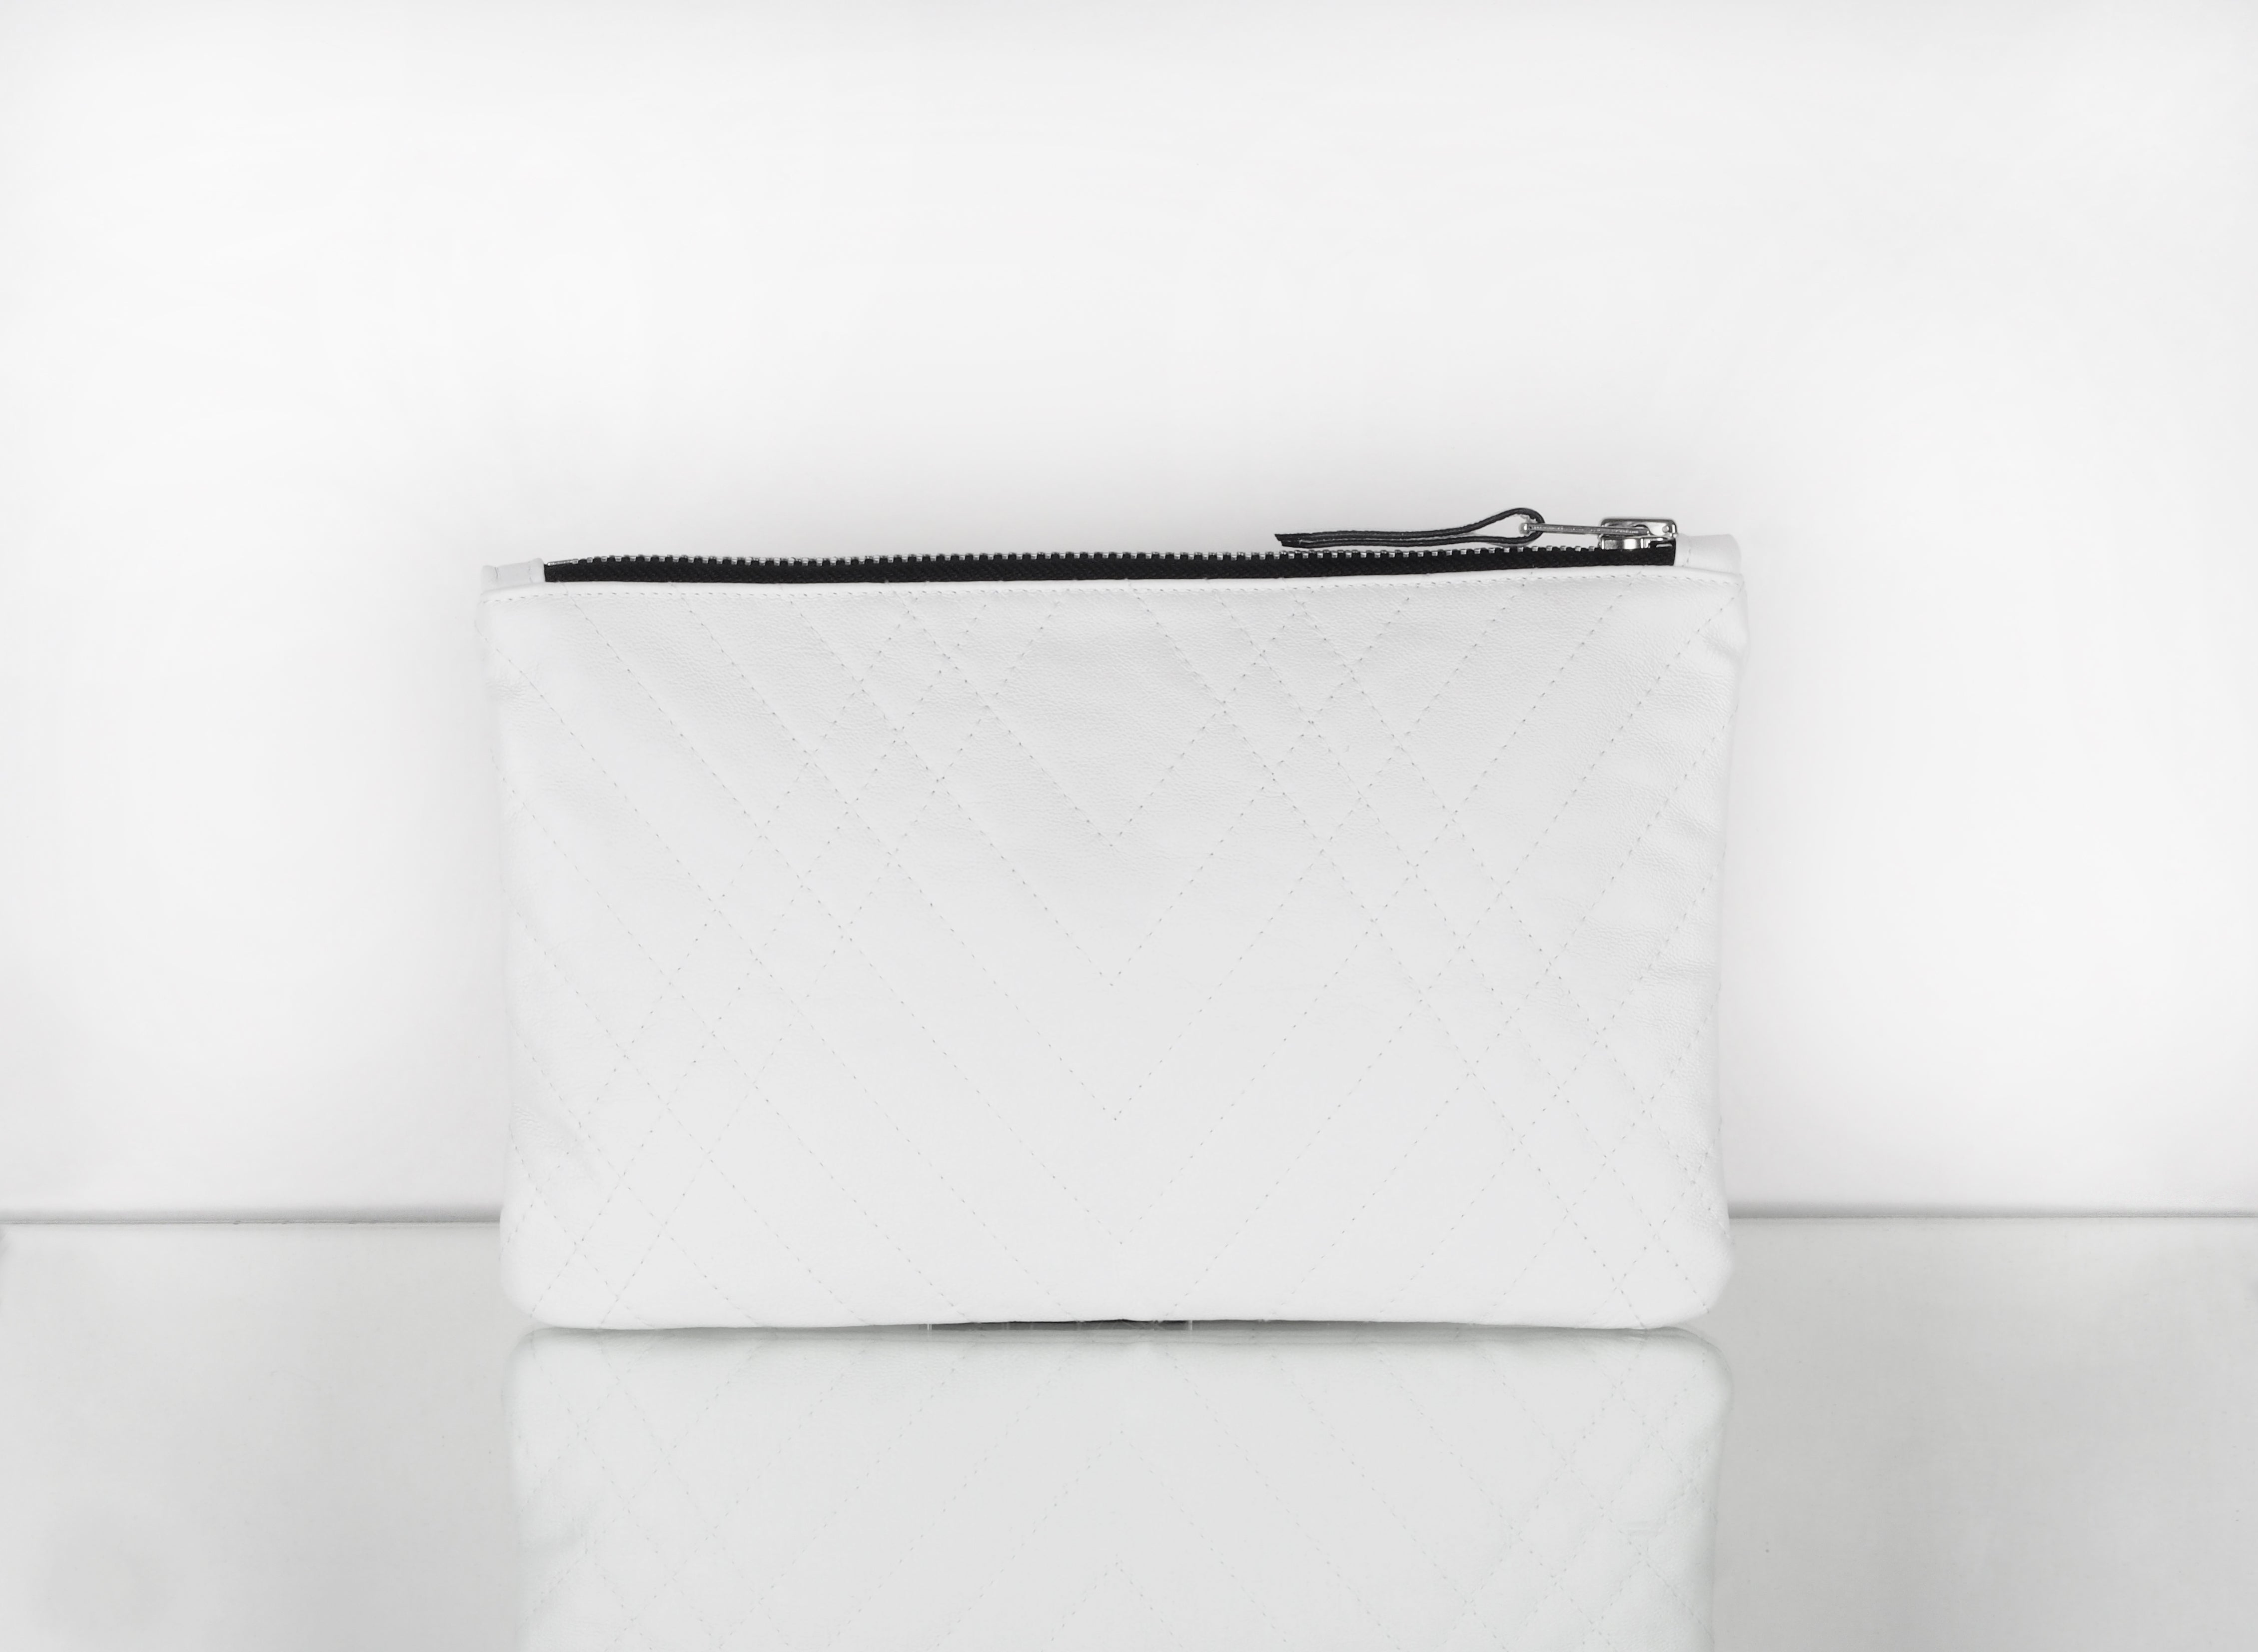 LIMITED EDITION QUILTED CLUTCH - CHRISTINA FISCHER